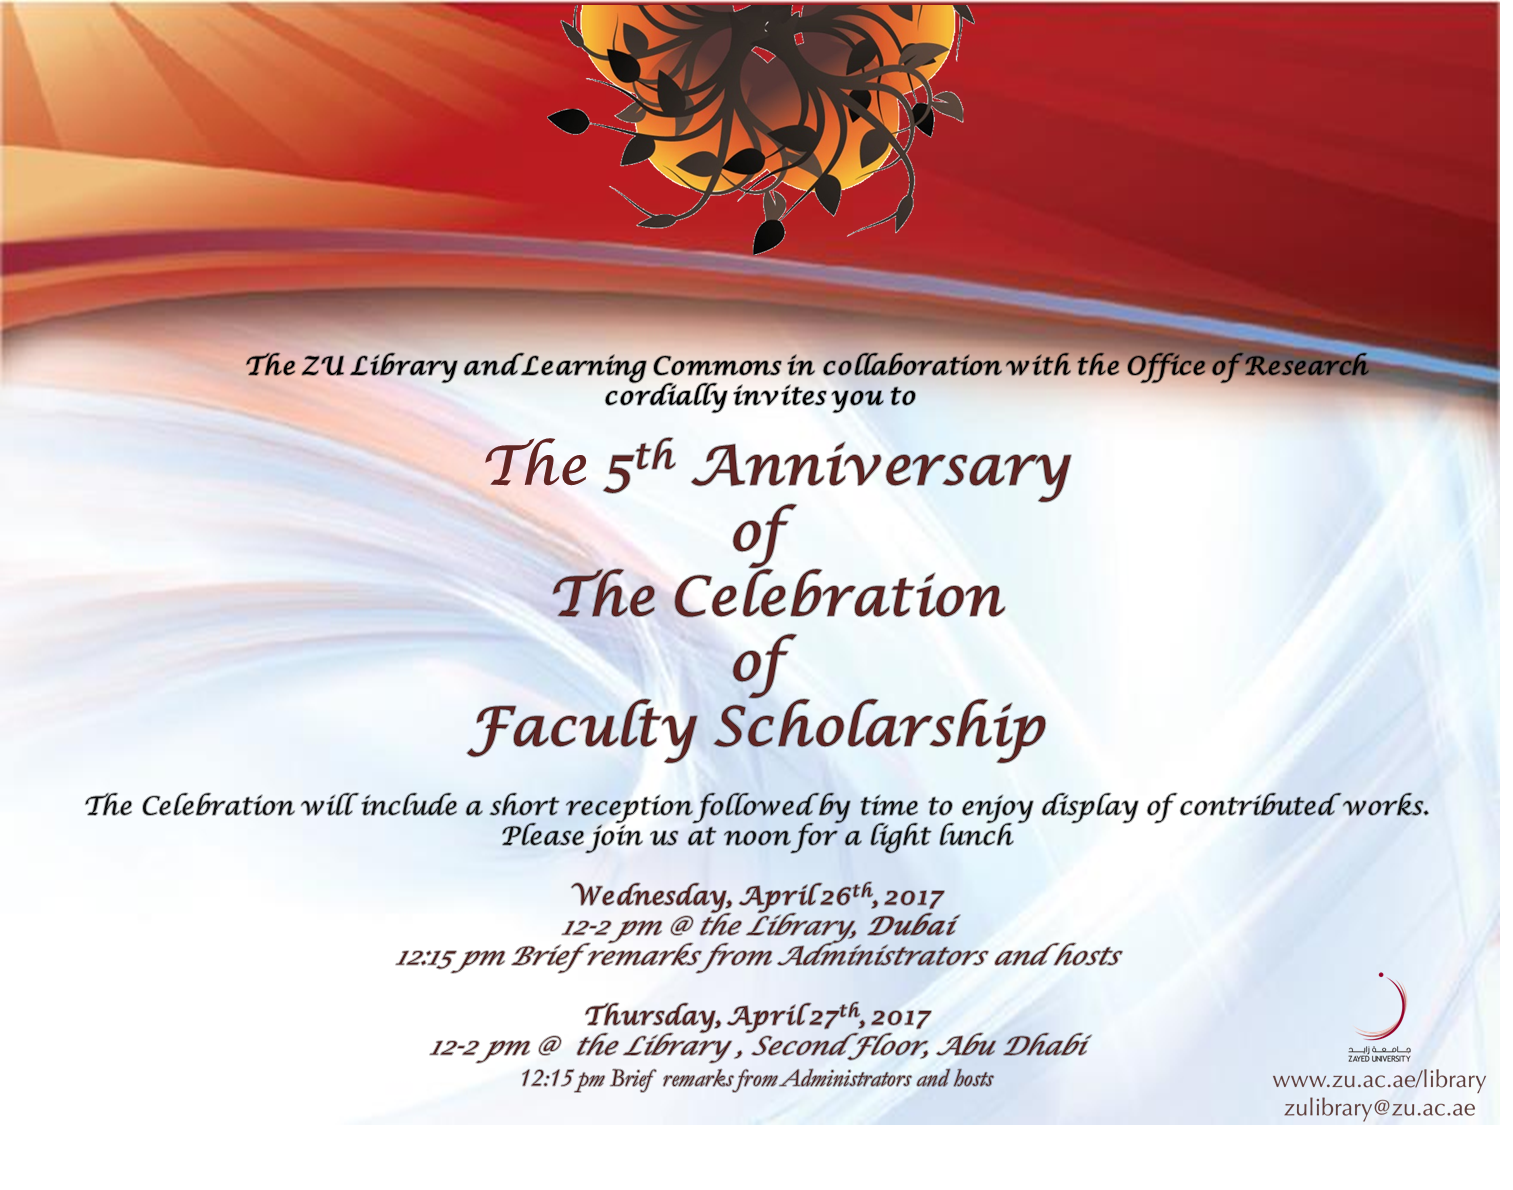 2017 Celebration of Faculty Scholarship - Faculty Scholarship ...